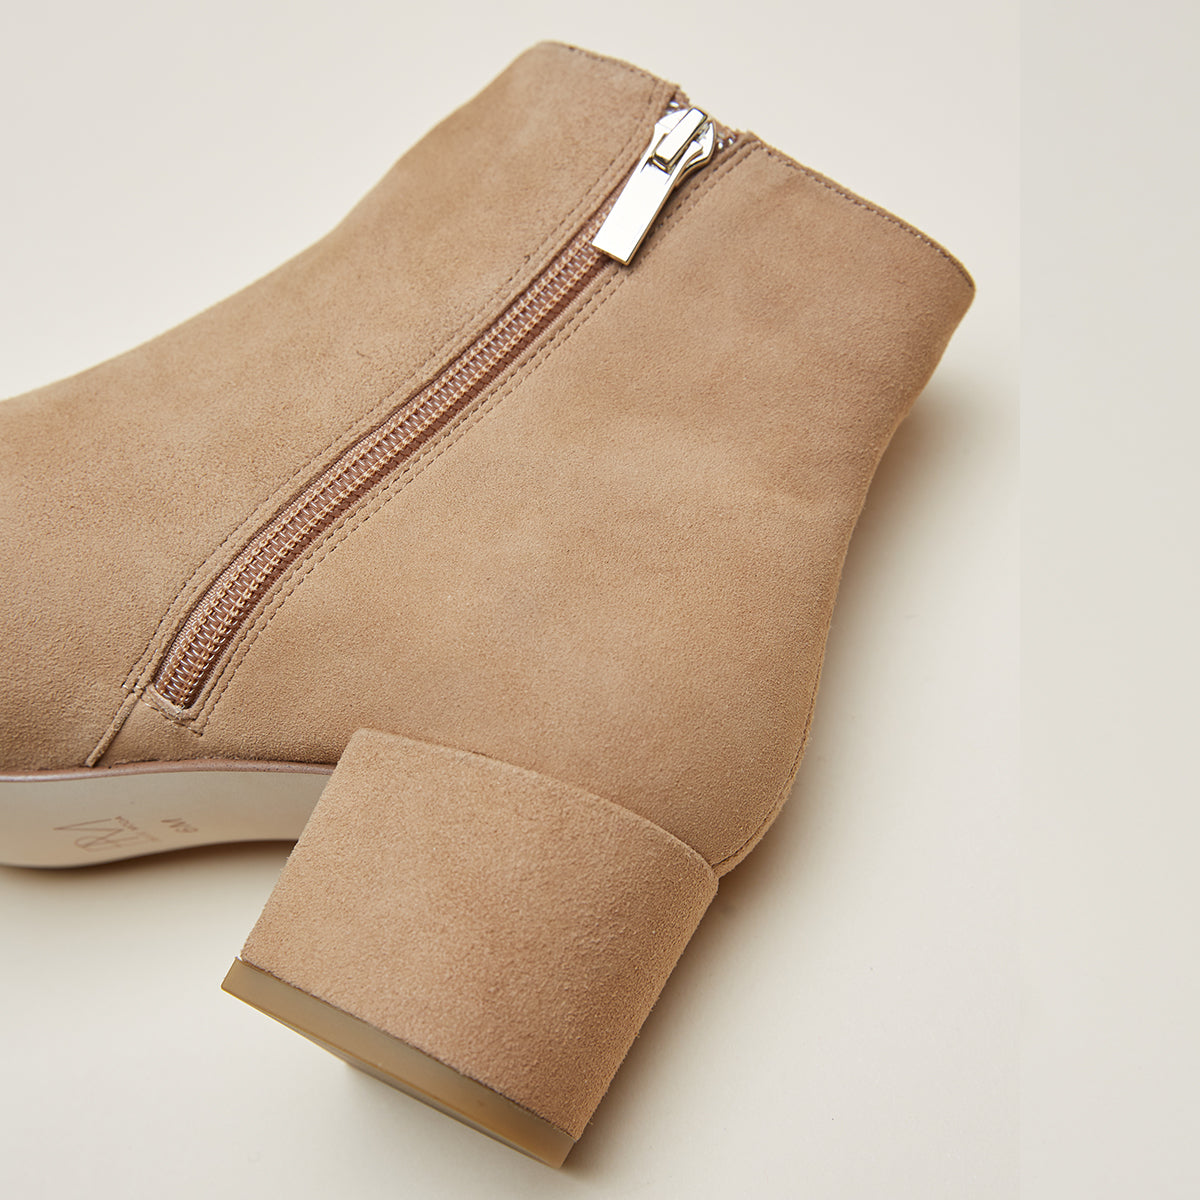 Umiko 2 ( Latte/ Kid Suede) 30% Off